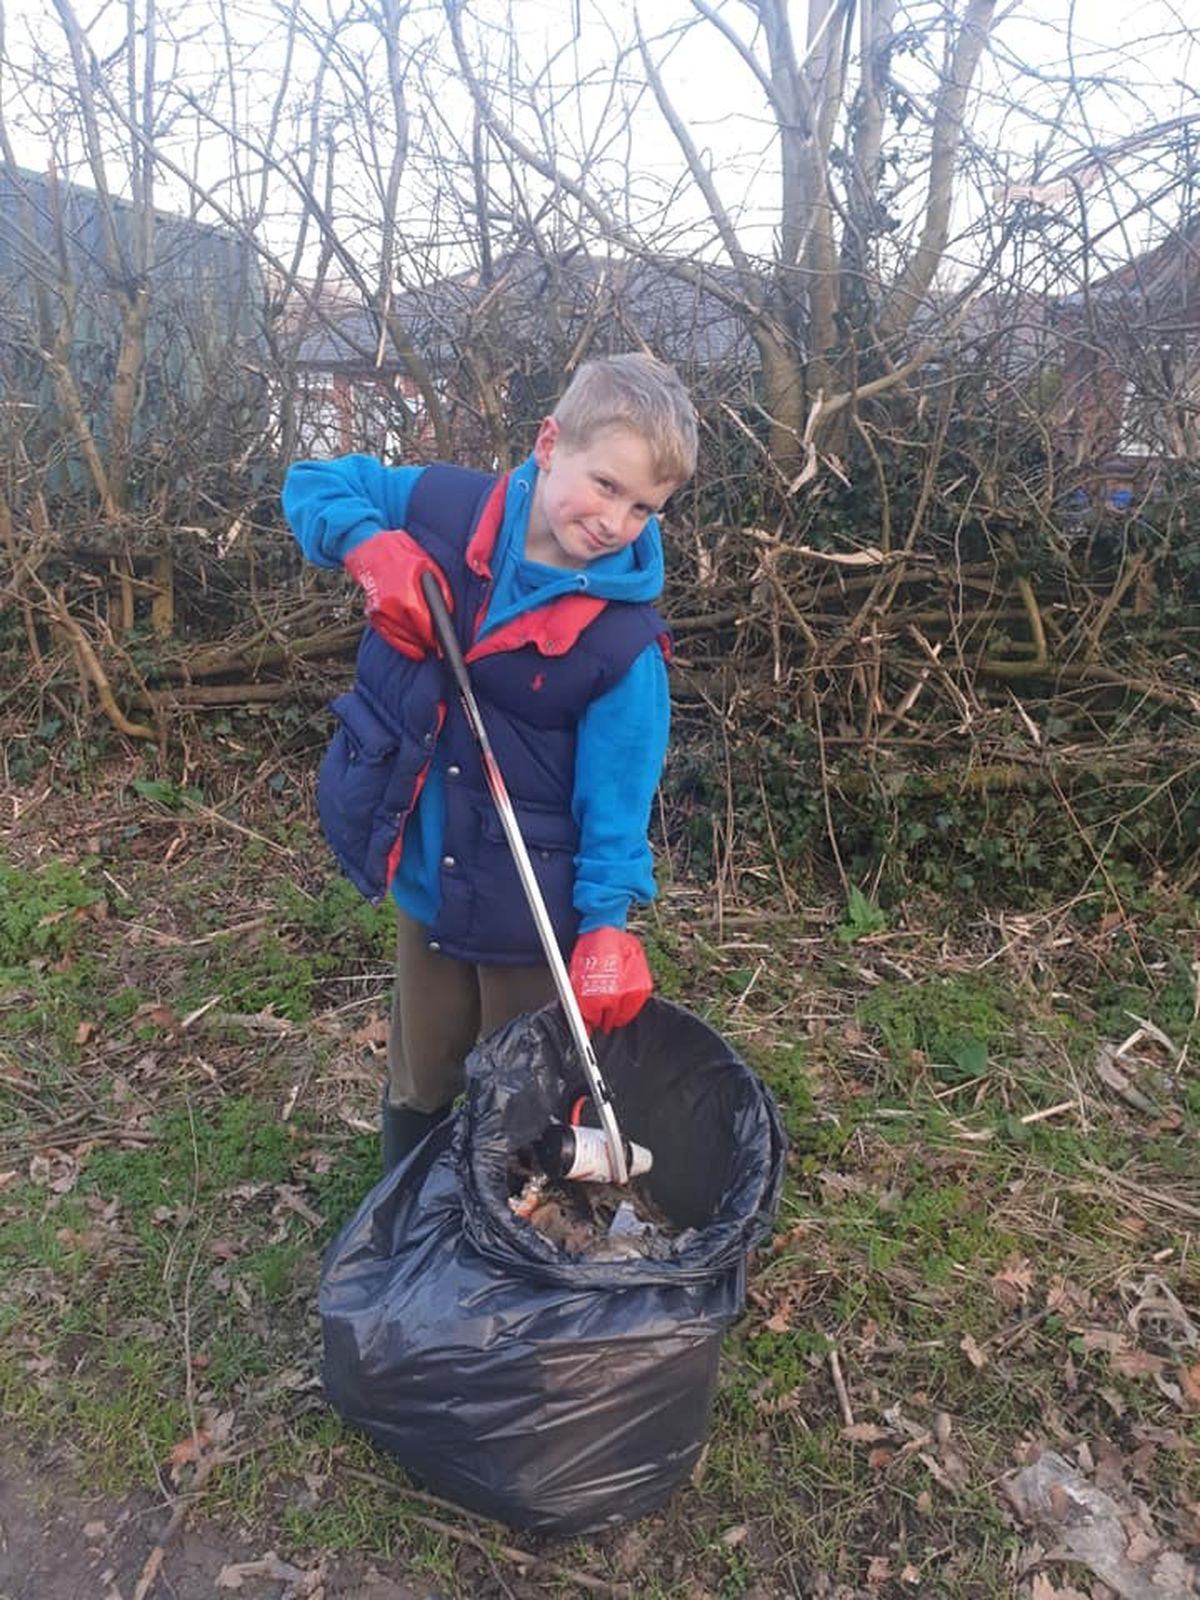 Edward filling another bag of litter